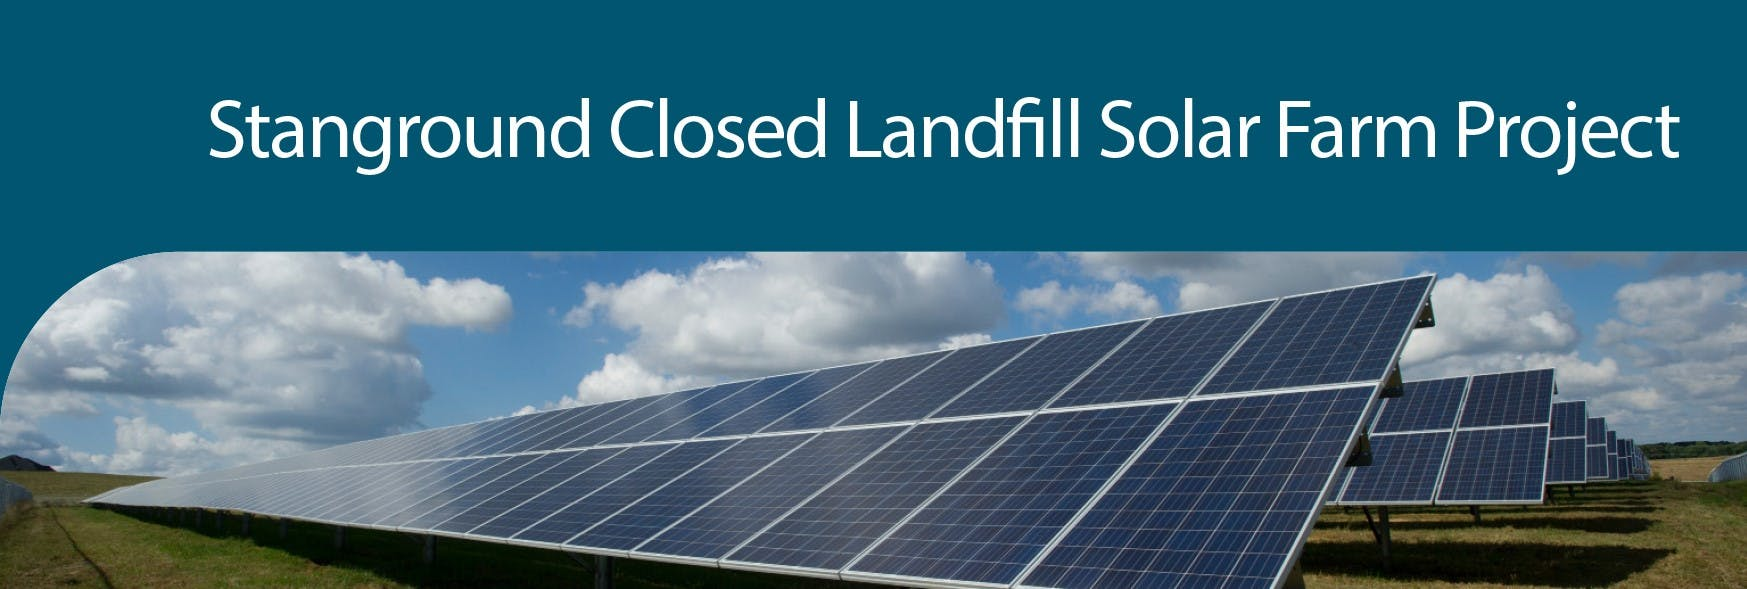 Representation of Stanground Closed Landfill Solar Farm Project